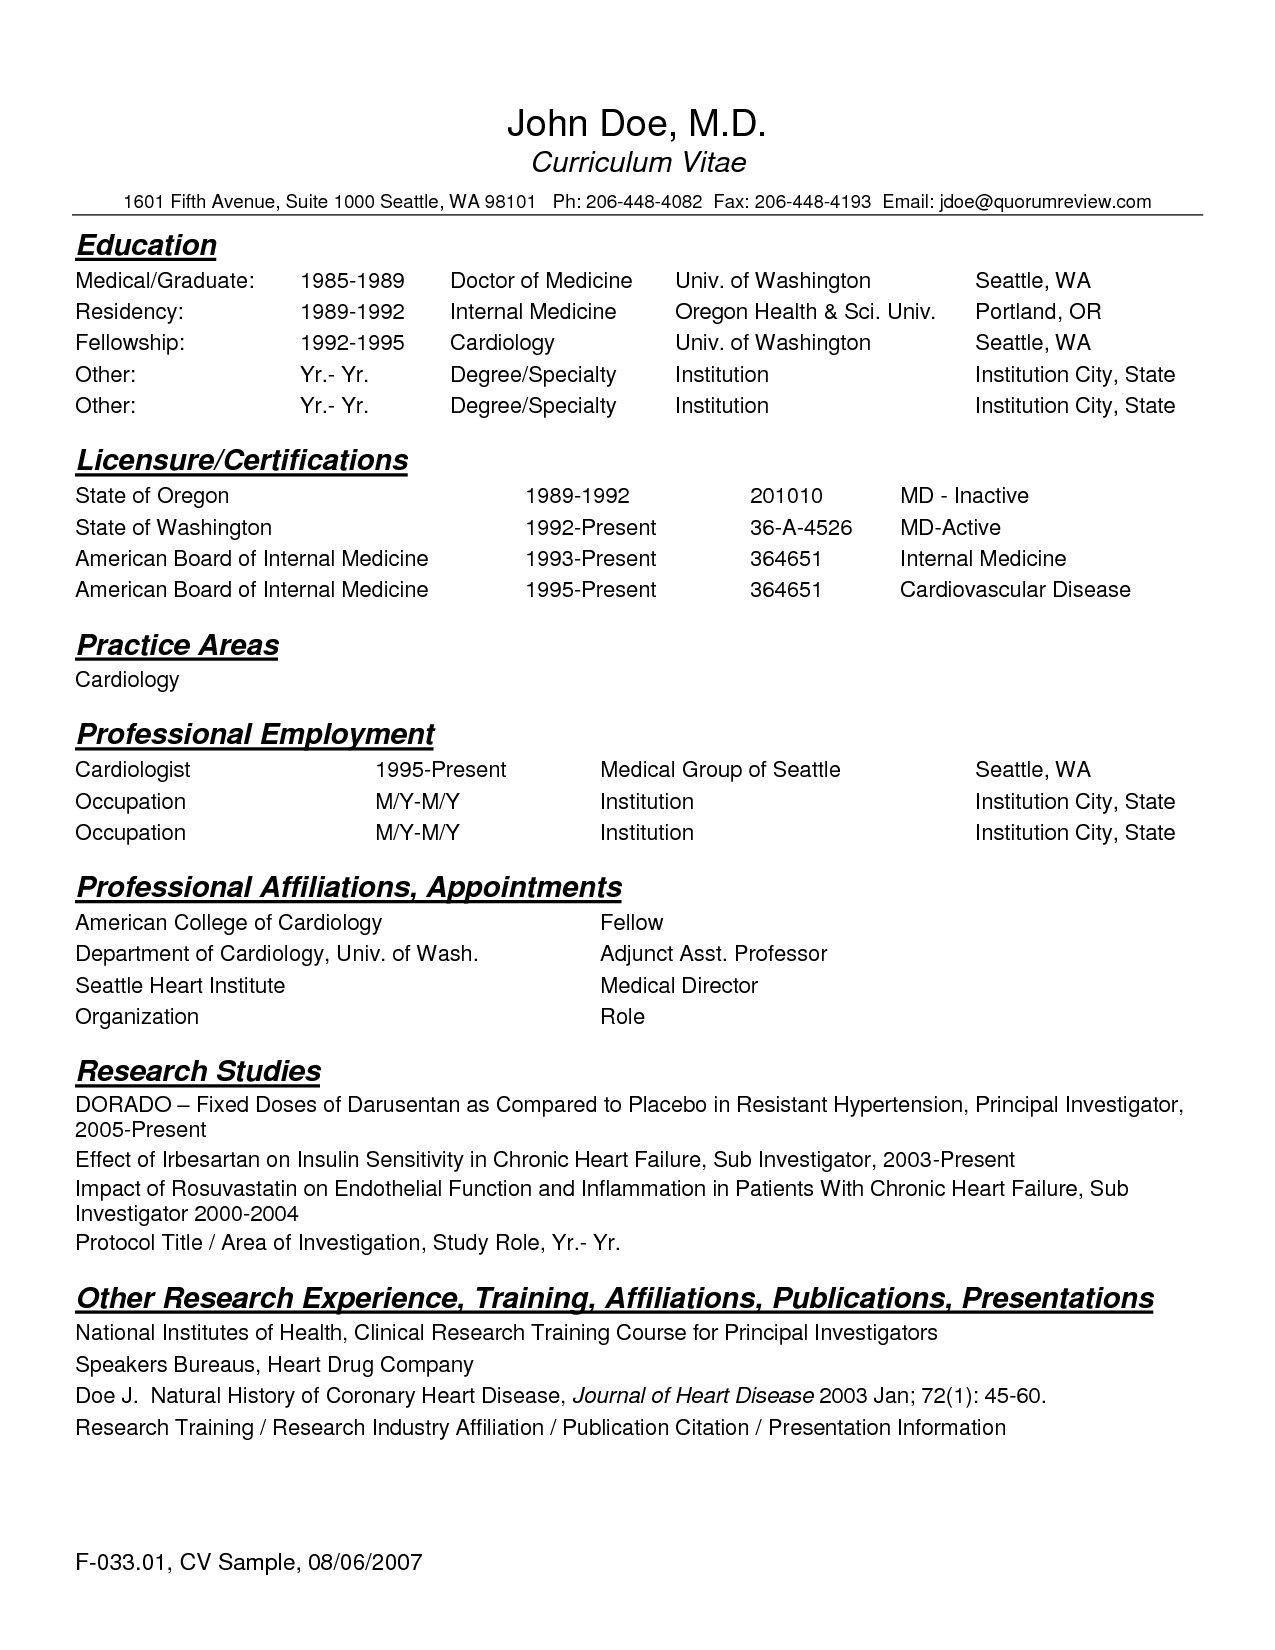 Resume Examples Me Nbspthis Website Is For Sale Nbspresume Examples Resources And Information Cv Template Word Cv Template Curriculum Vitae